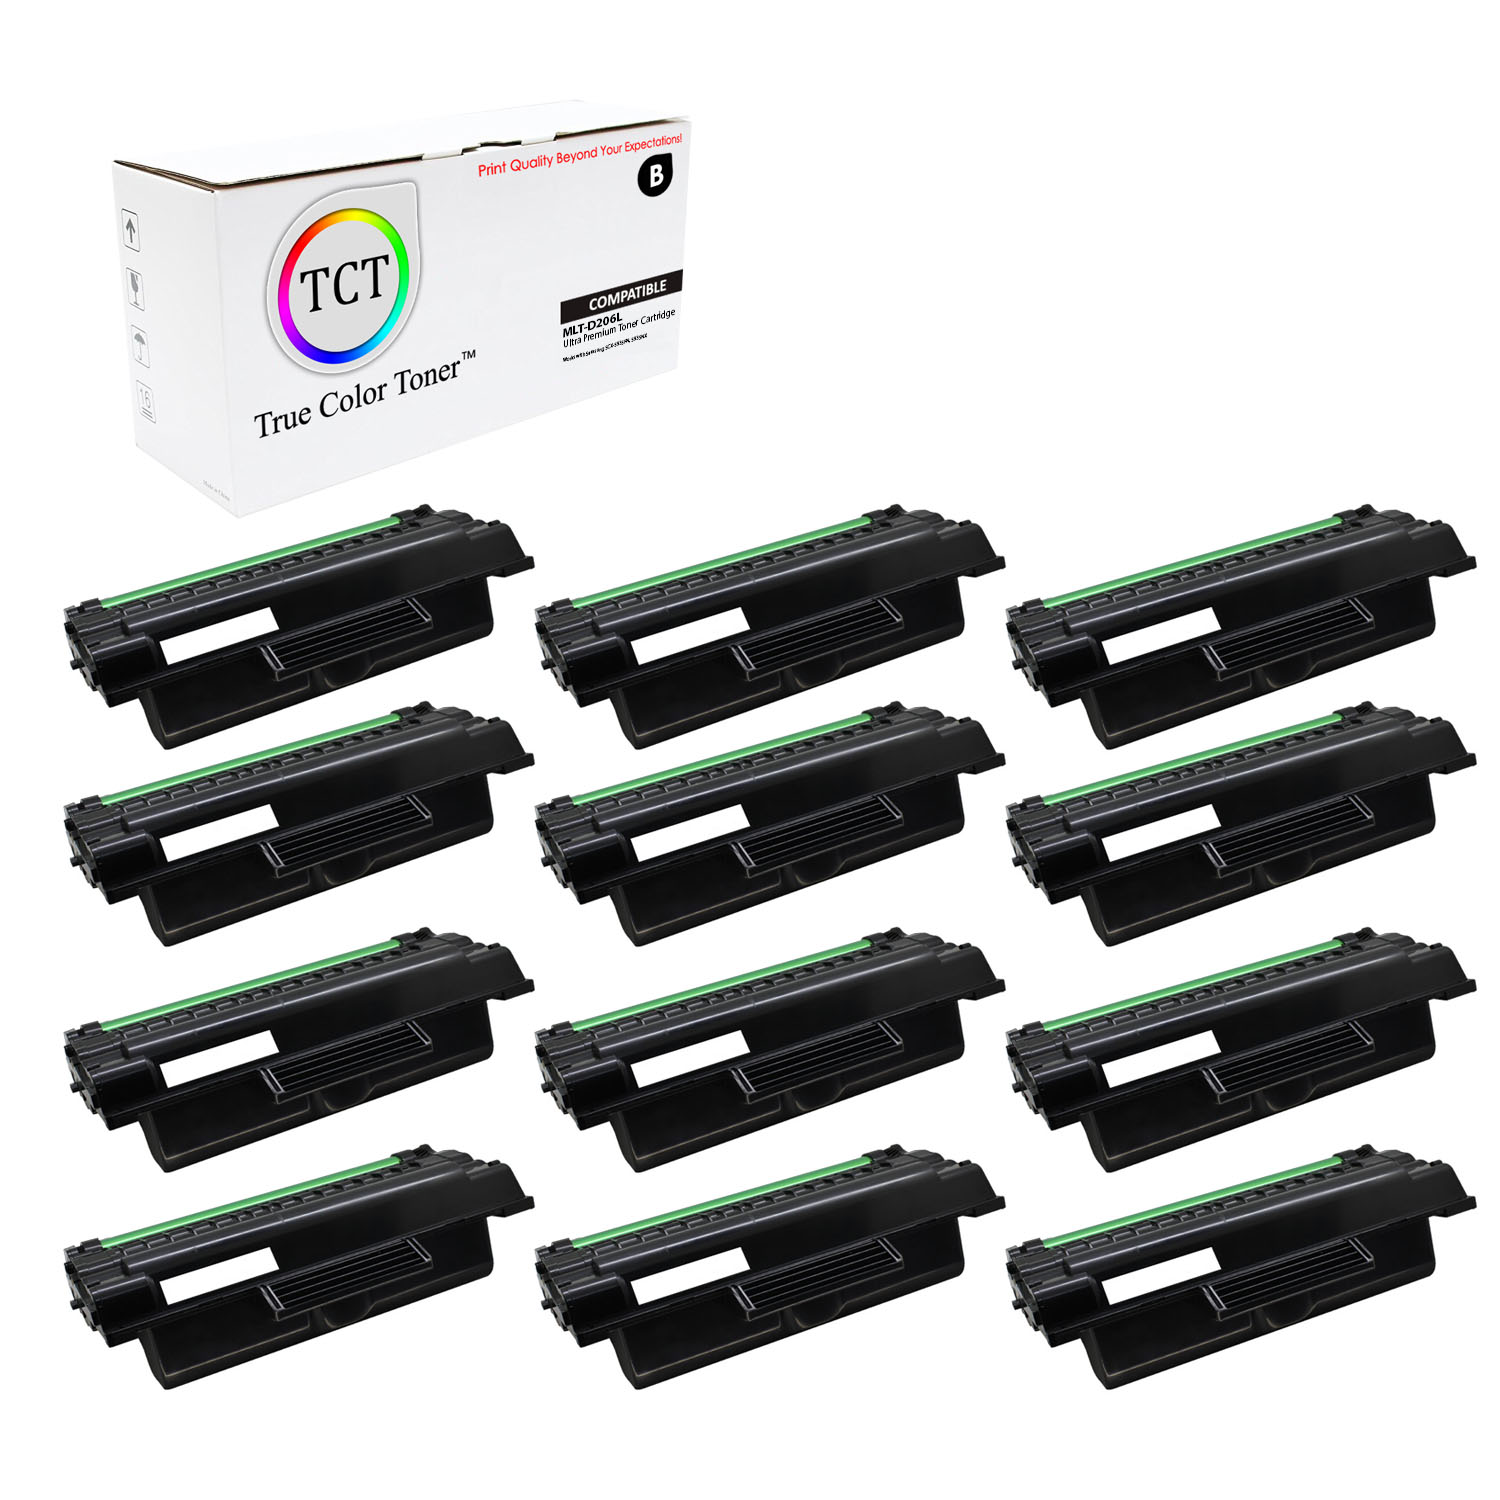 3 pk MLT-D206L Toner for Samsung SCX-5935FN Printer FREE SHIPPING!